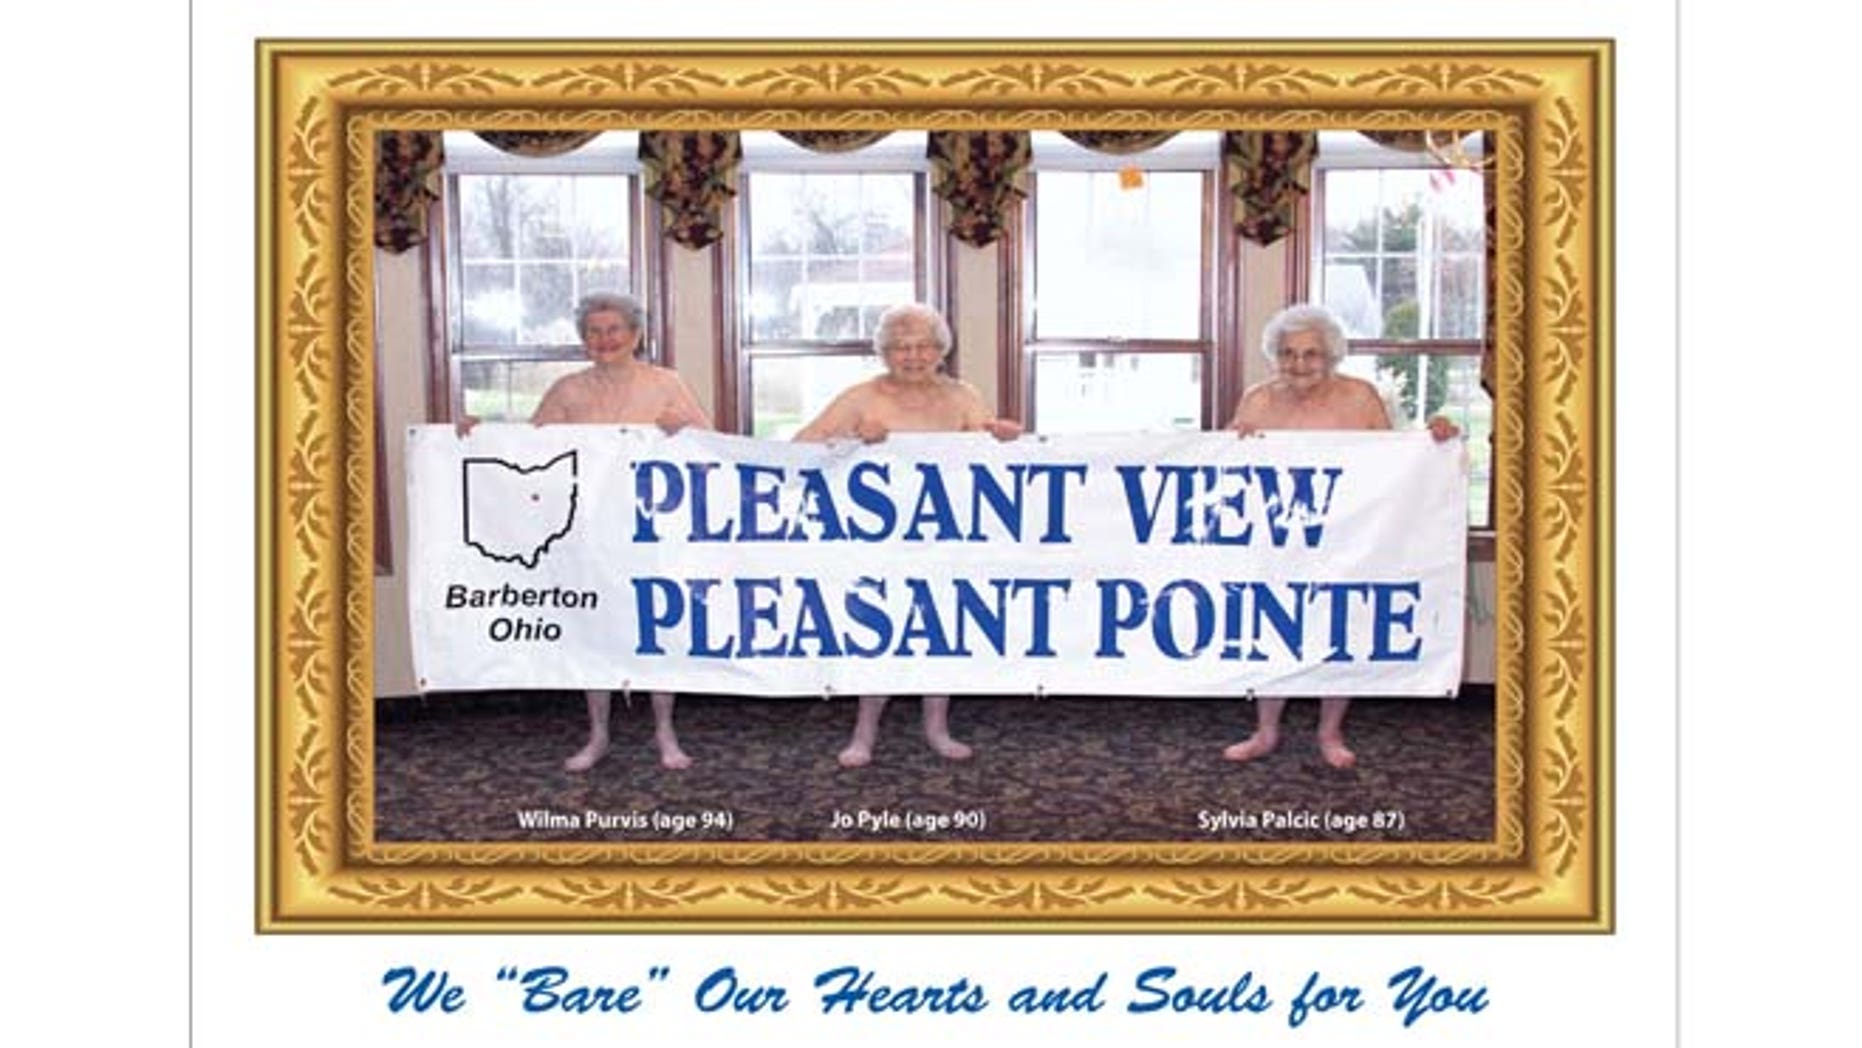 In this undated image provided by Pleasant Pointe Assisted Living, residents, from left, Wilma Purvis, 94, Jo Pyle, 90, and Sylvia Palcic, 87, pose for a photo that appears on the cover of the Barberton, Ohio facility's charity calendar.